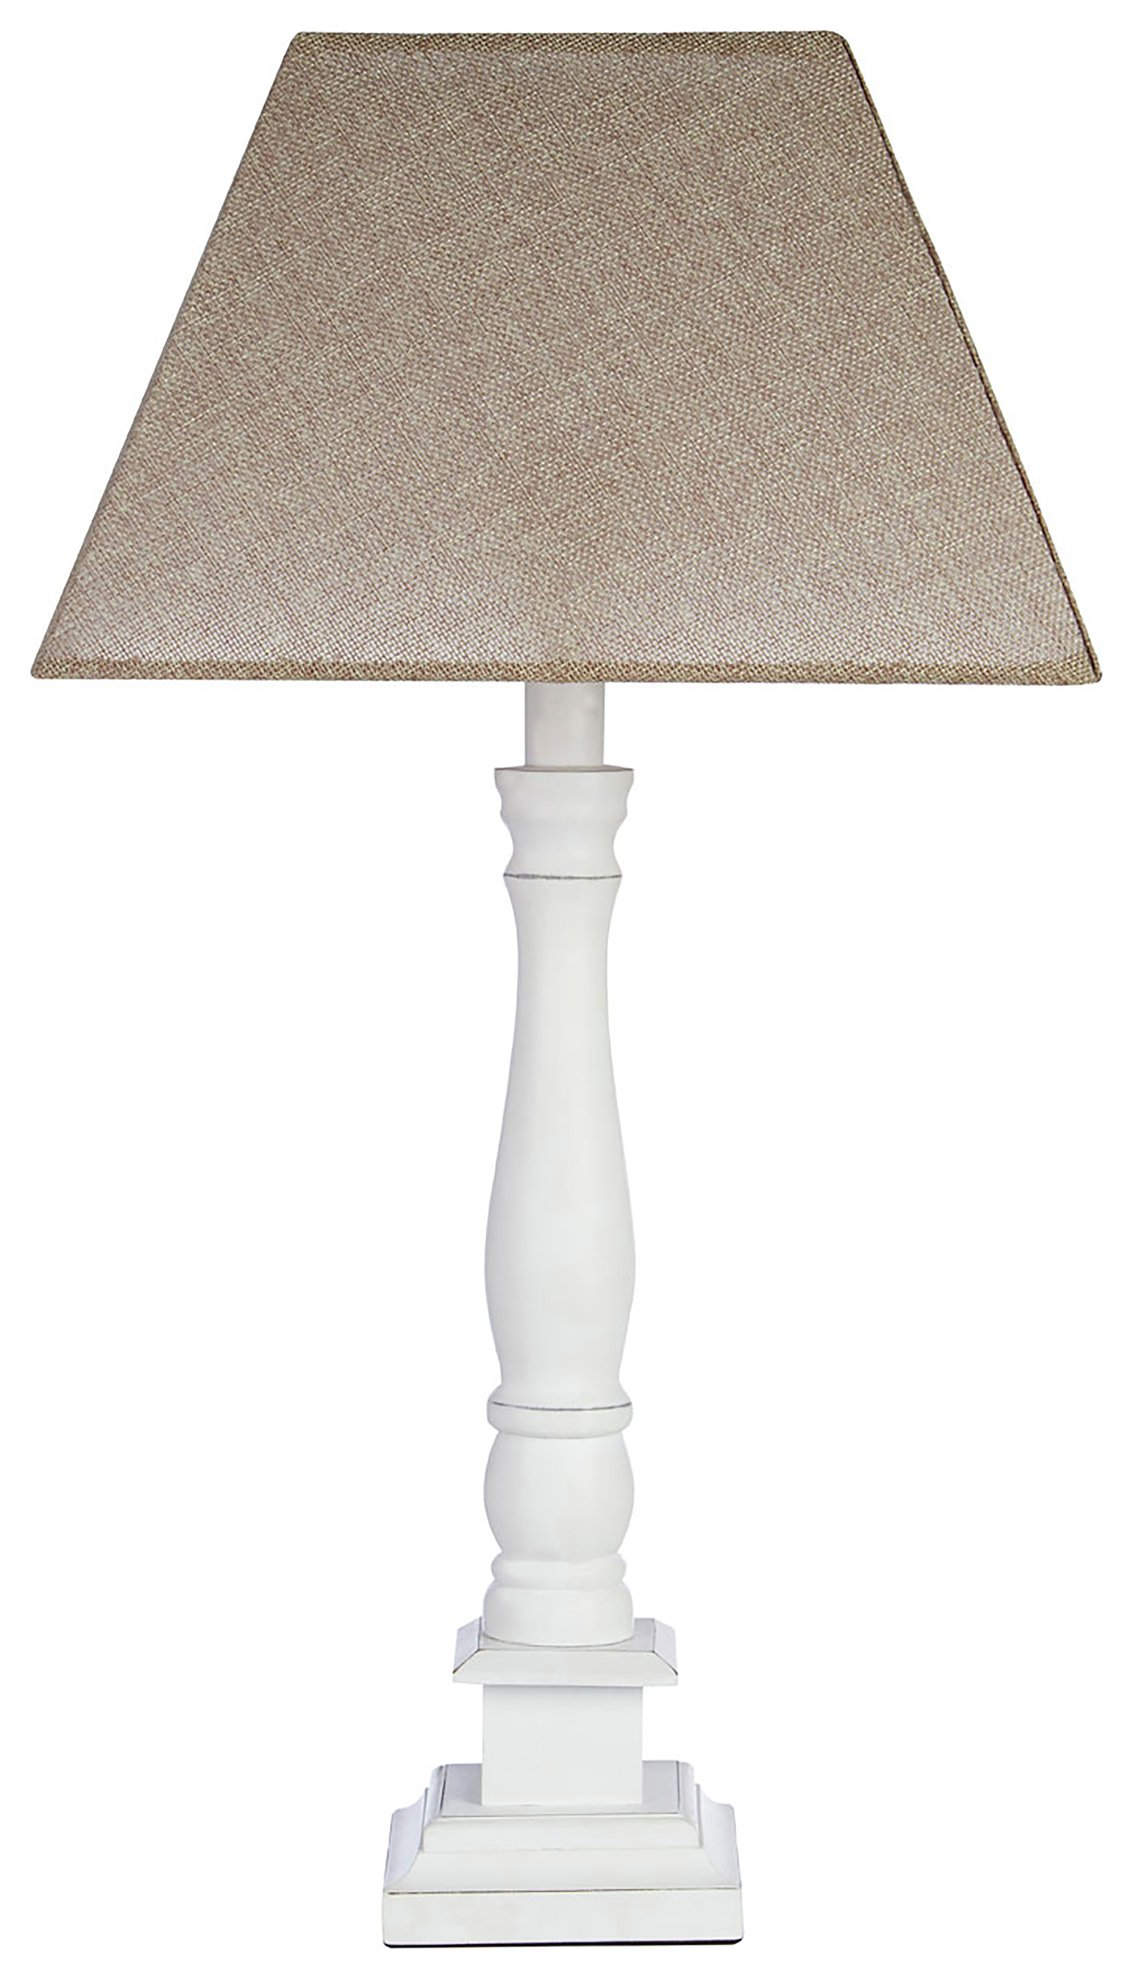 Image of Maine - Wood Candlestick Table Lamp - White